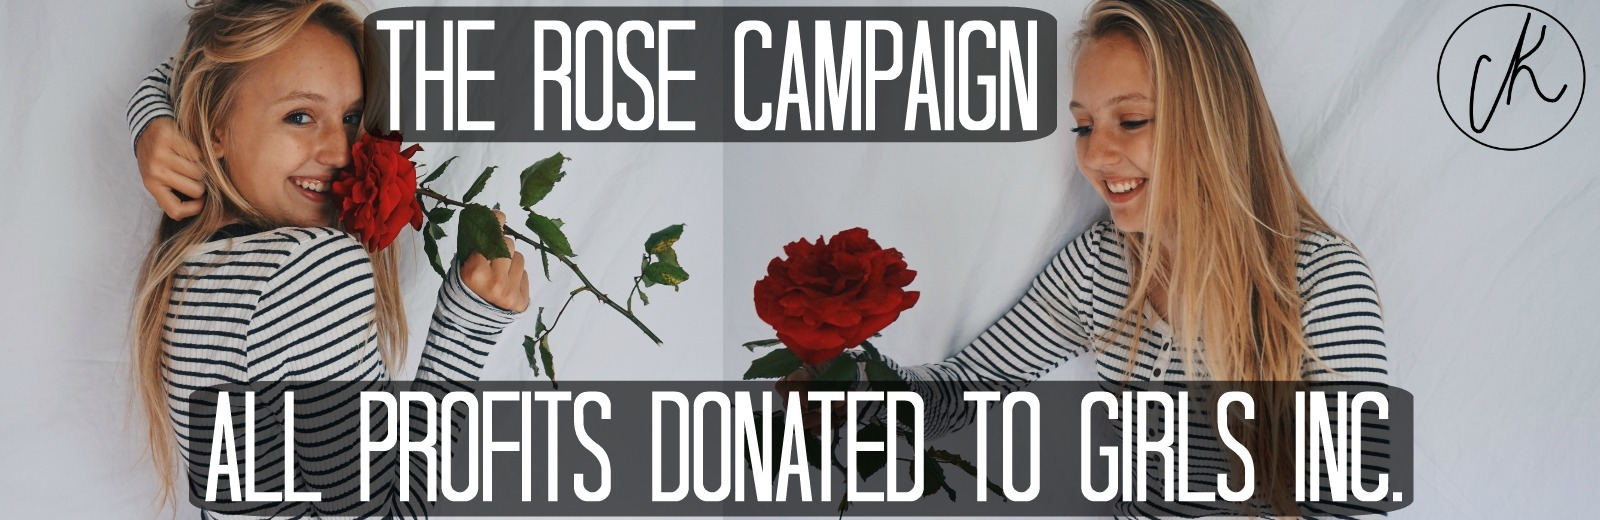 The Rose Campaign By Caitlin Kelly Store